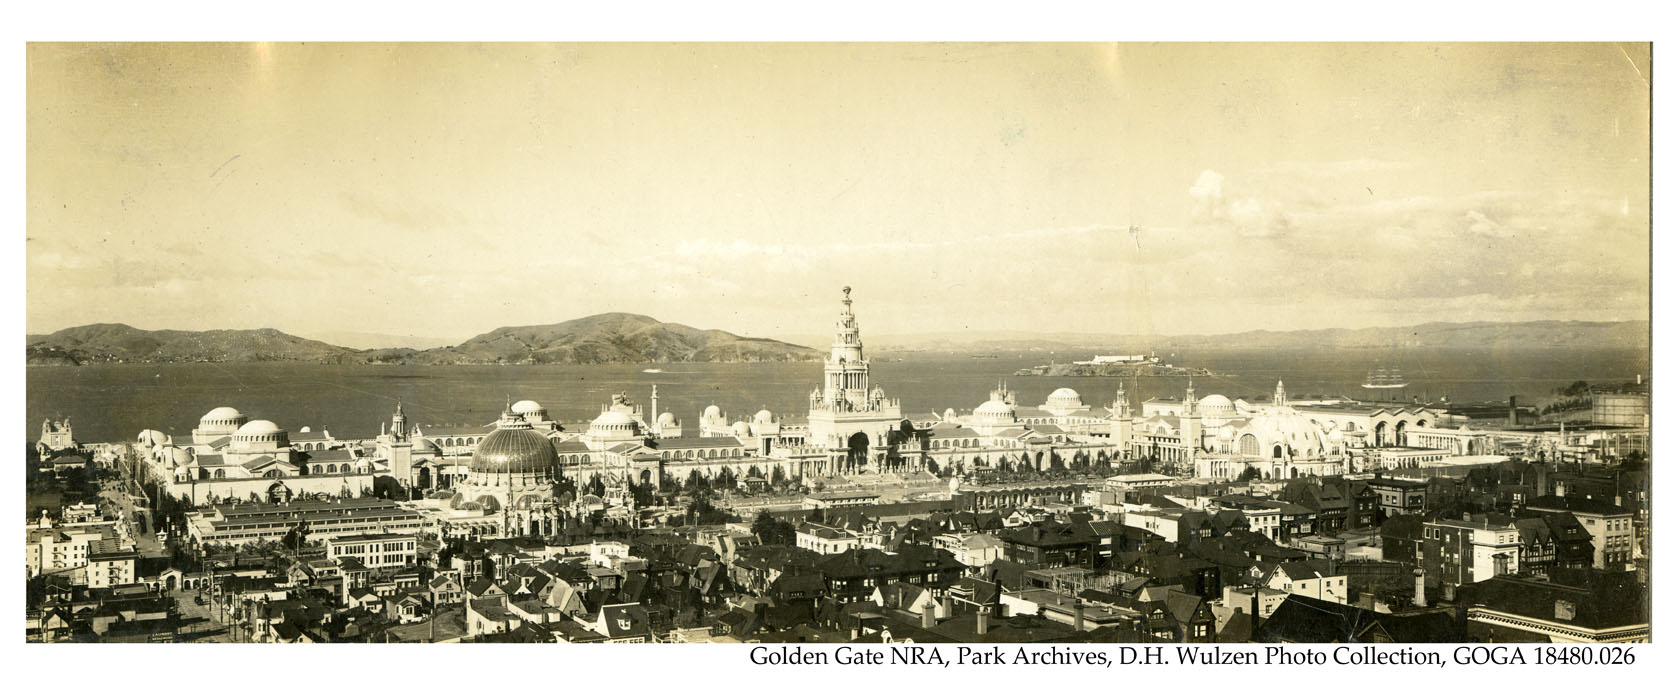 The Year Of The Panama Pacific International Exposition